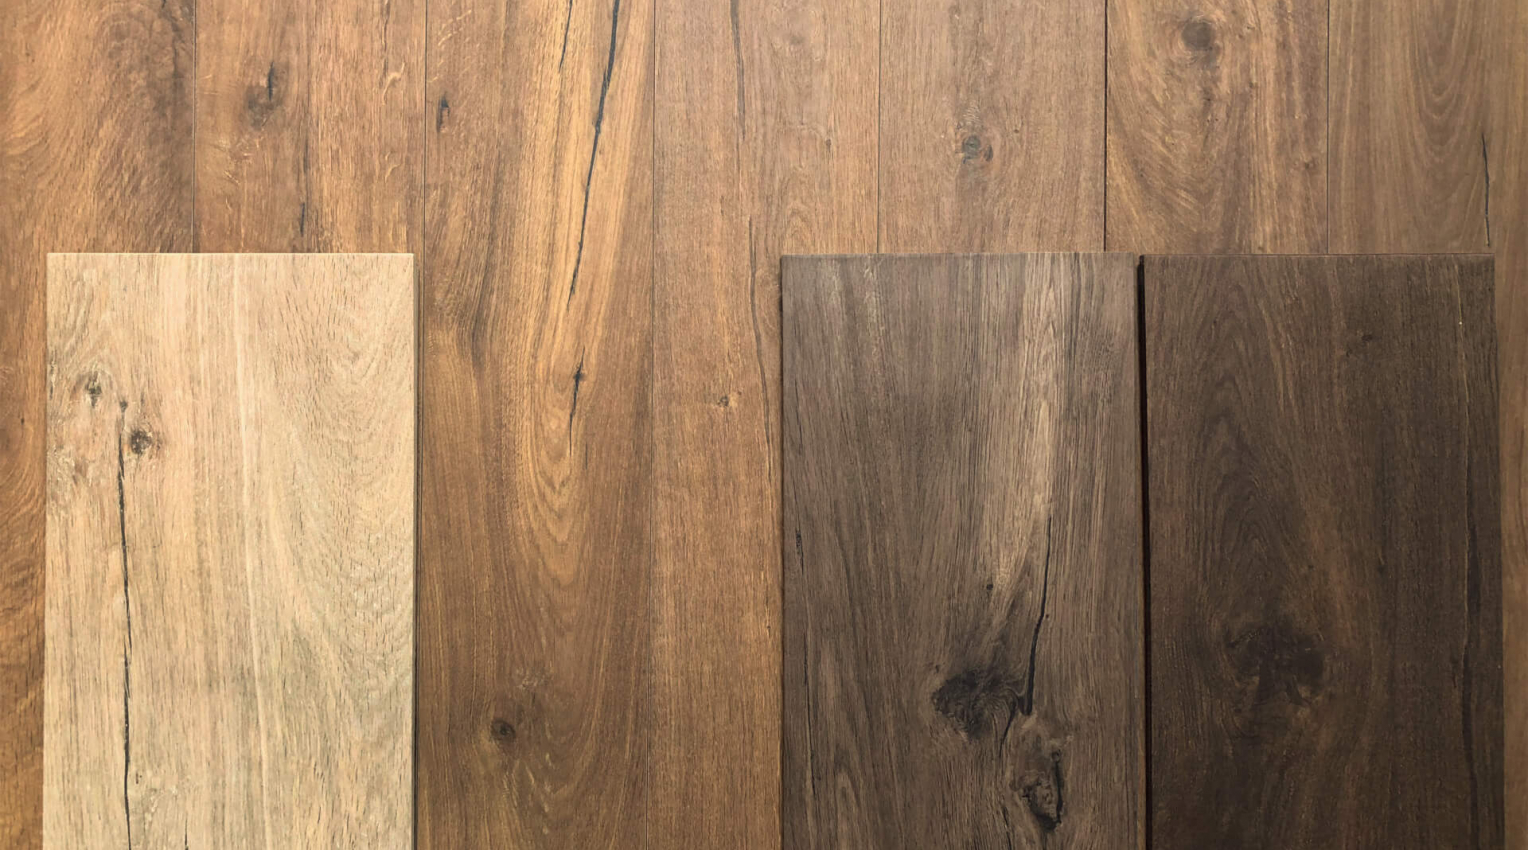 Arthis Natural wood effect porcelain tiles